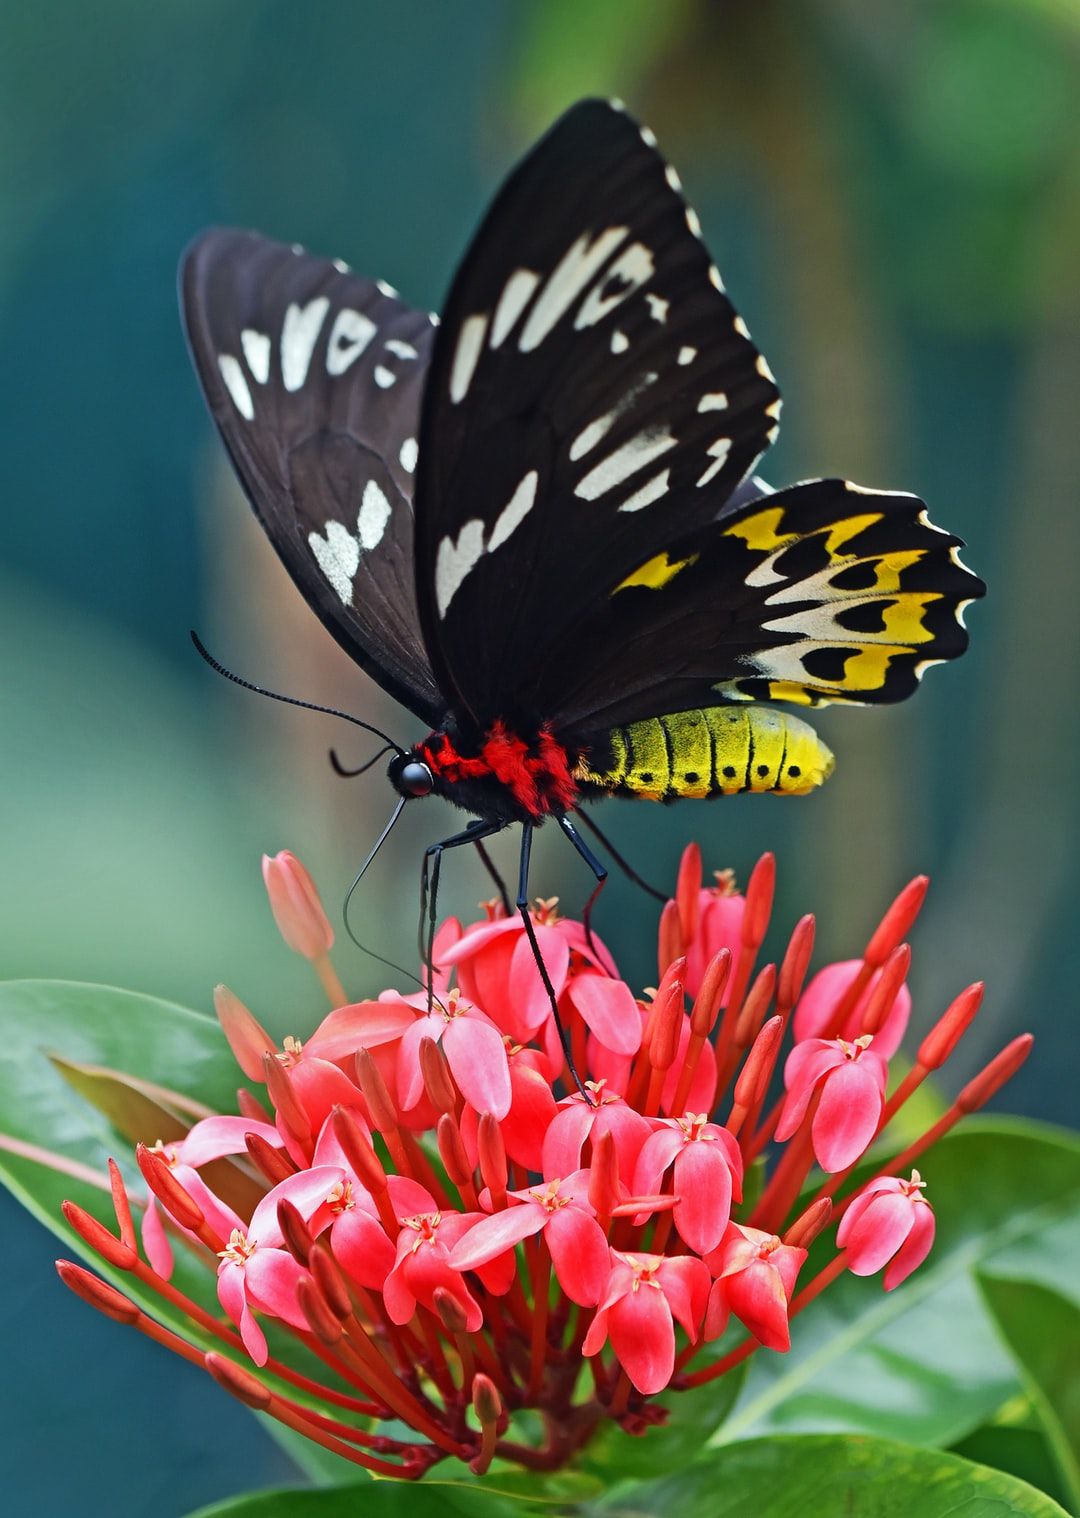 After much effort, I finally managed to get a photo of this butterfly sipping nectar from a pink ixora flower.